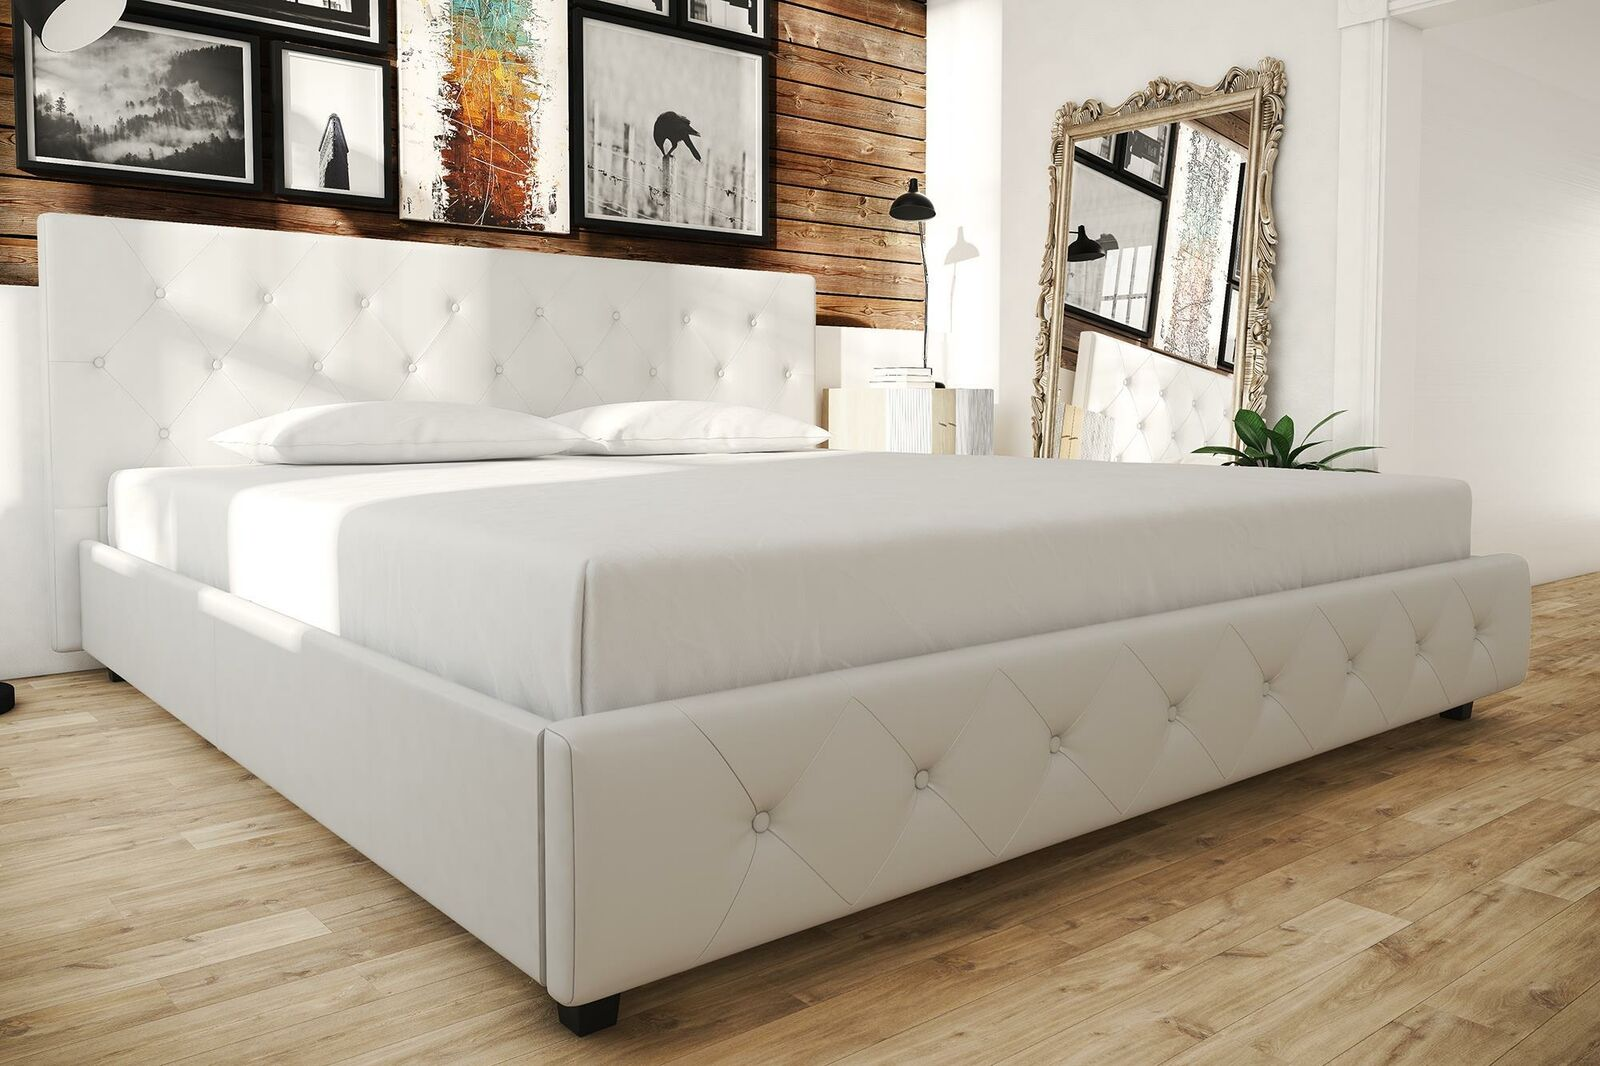 Maitland Smith Campaign Leather Rattan Bamboo King Size Platform Bed Exc Cond For Sale Online Ebay